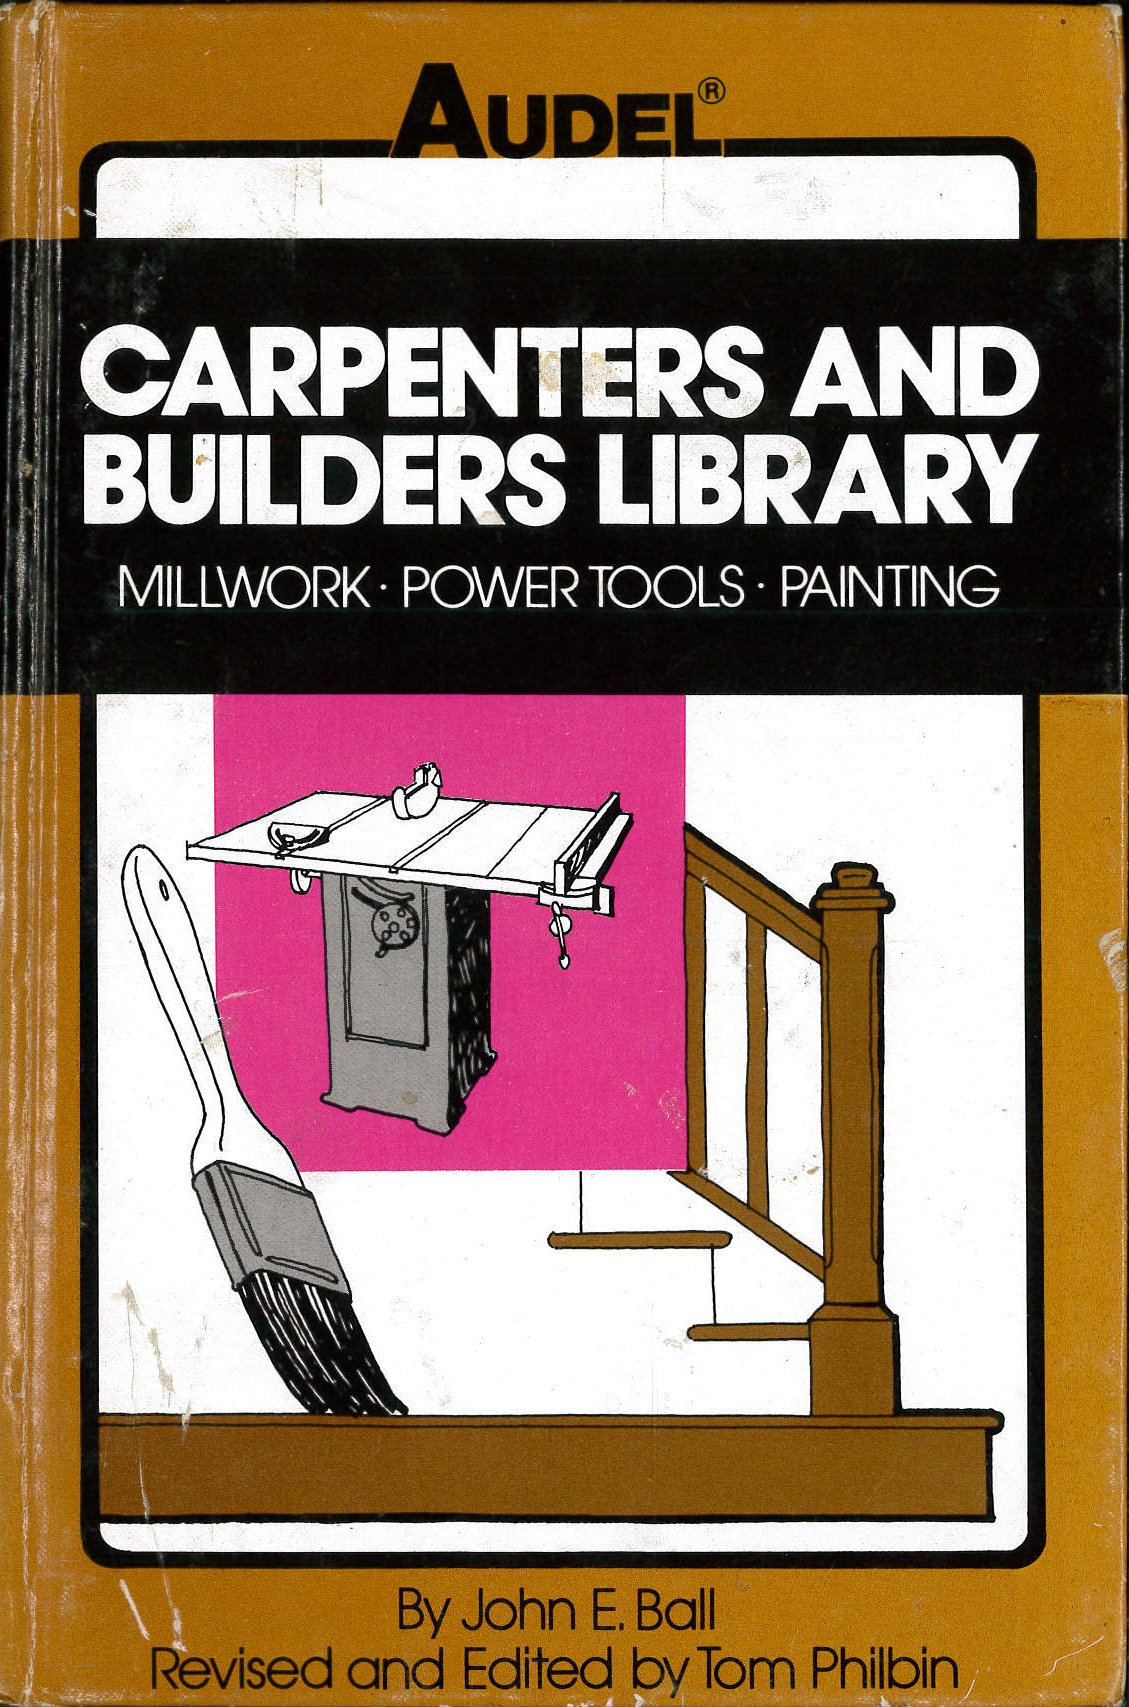 Carpenters and Builders Library: Millwork, Power Tools, Painting v. 4 (Carpenters and builders library / by John E. Ball)